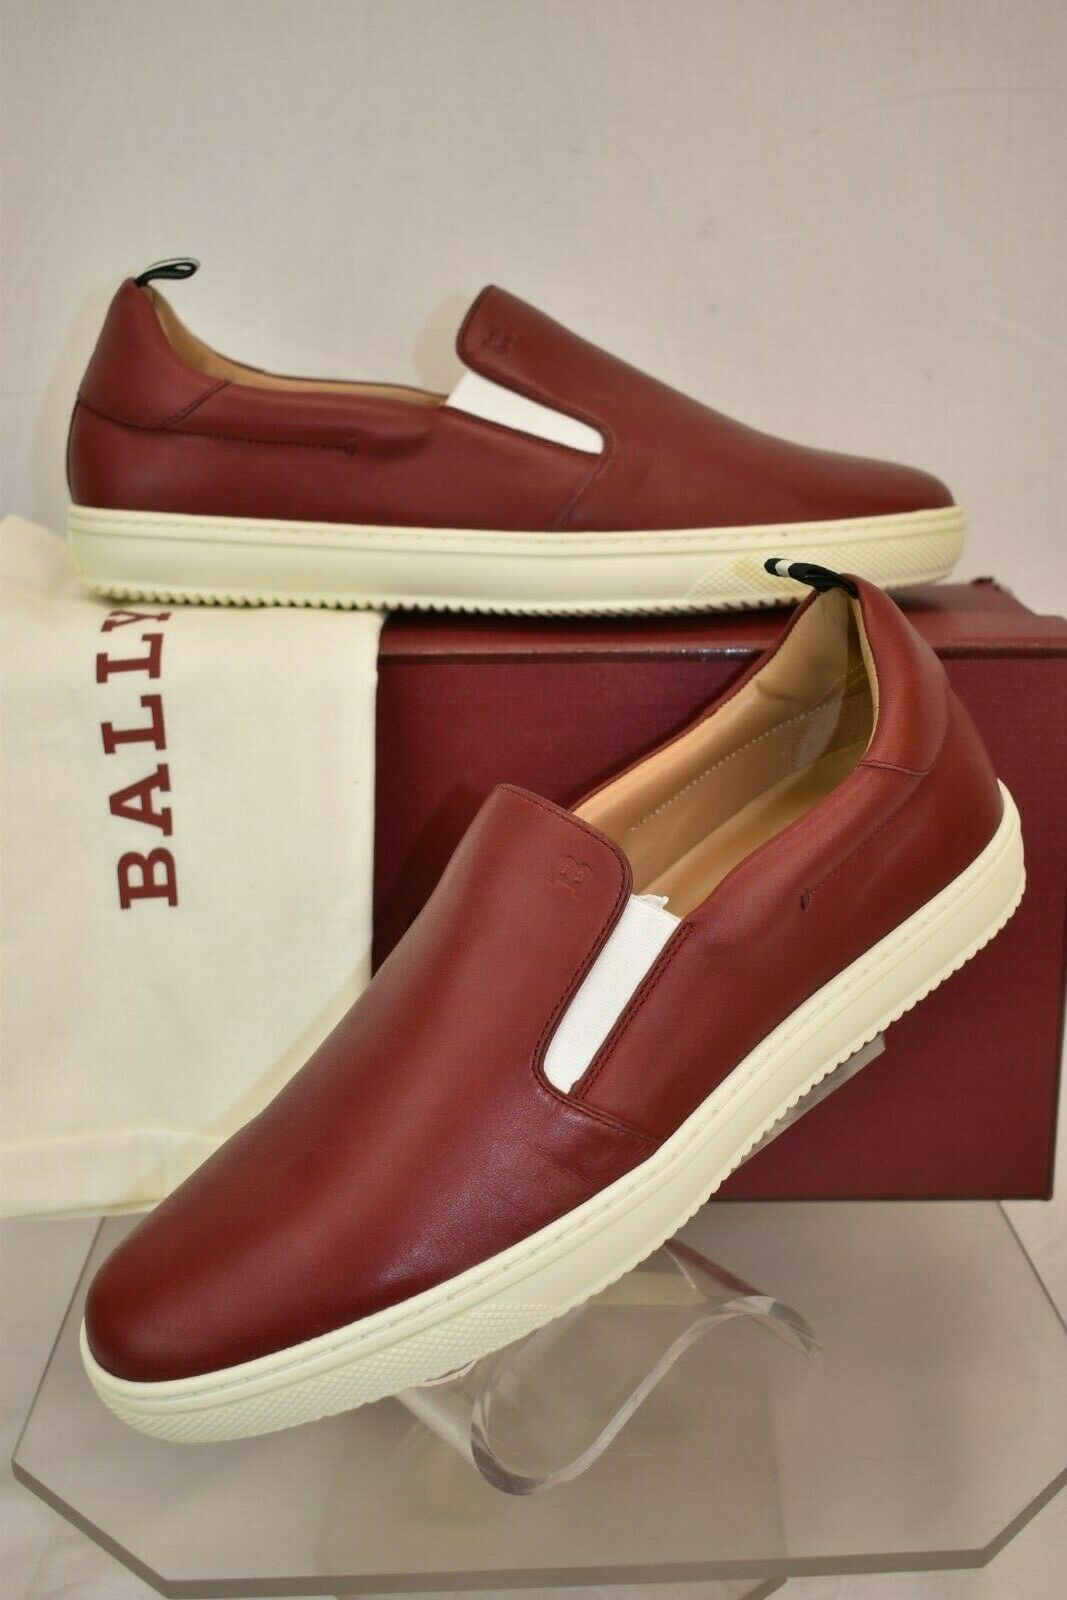 NIB BALLY ORNIEL RED LEATHER LOW TOP LOGO SLIP ON SNEAKERS 7.5 US 40.5